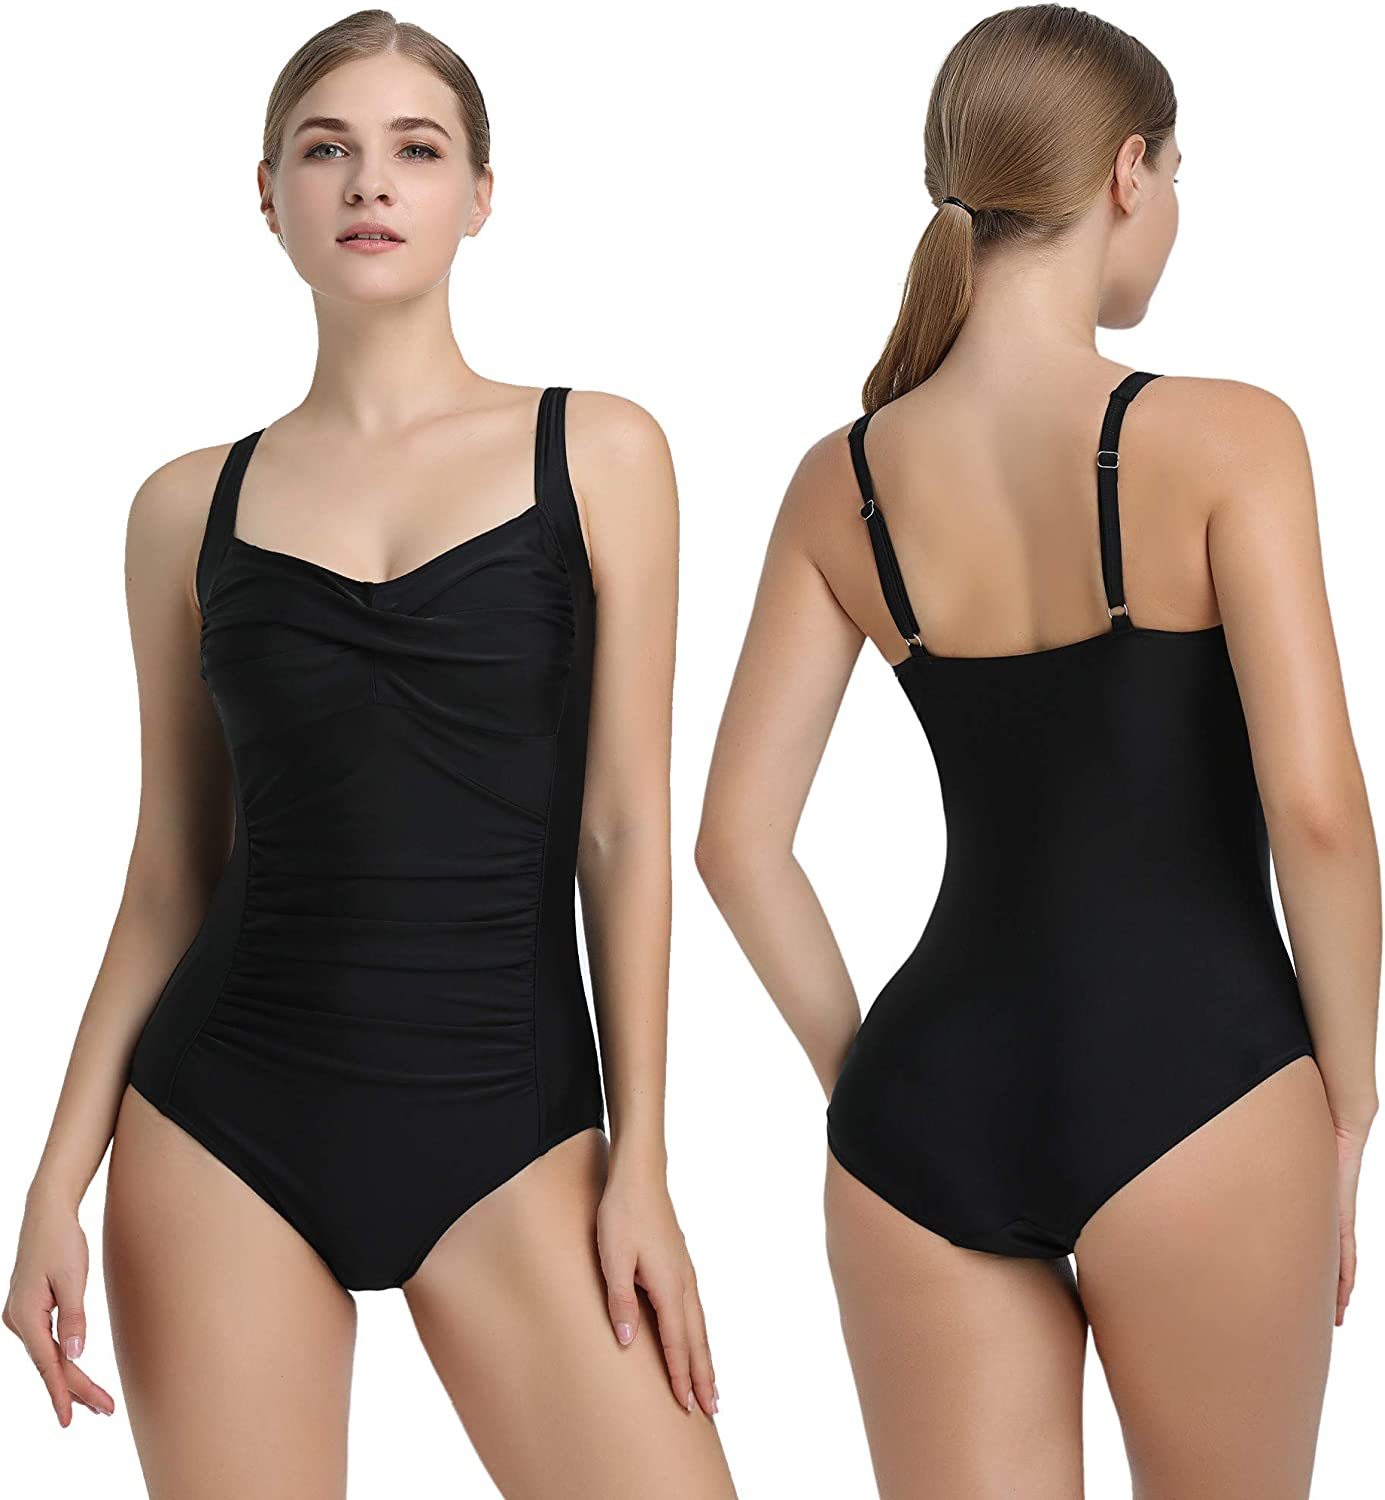 Amorbella Womens One Piece Swimsuit Ruched Tummy Control Bathing Suit Retro Vintage Swimwear